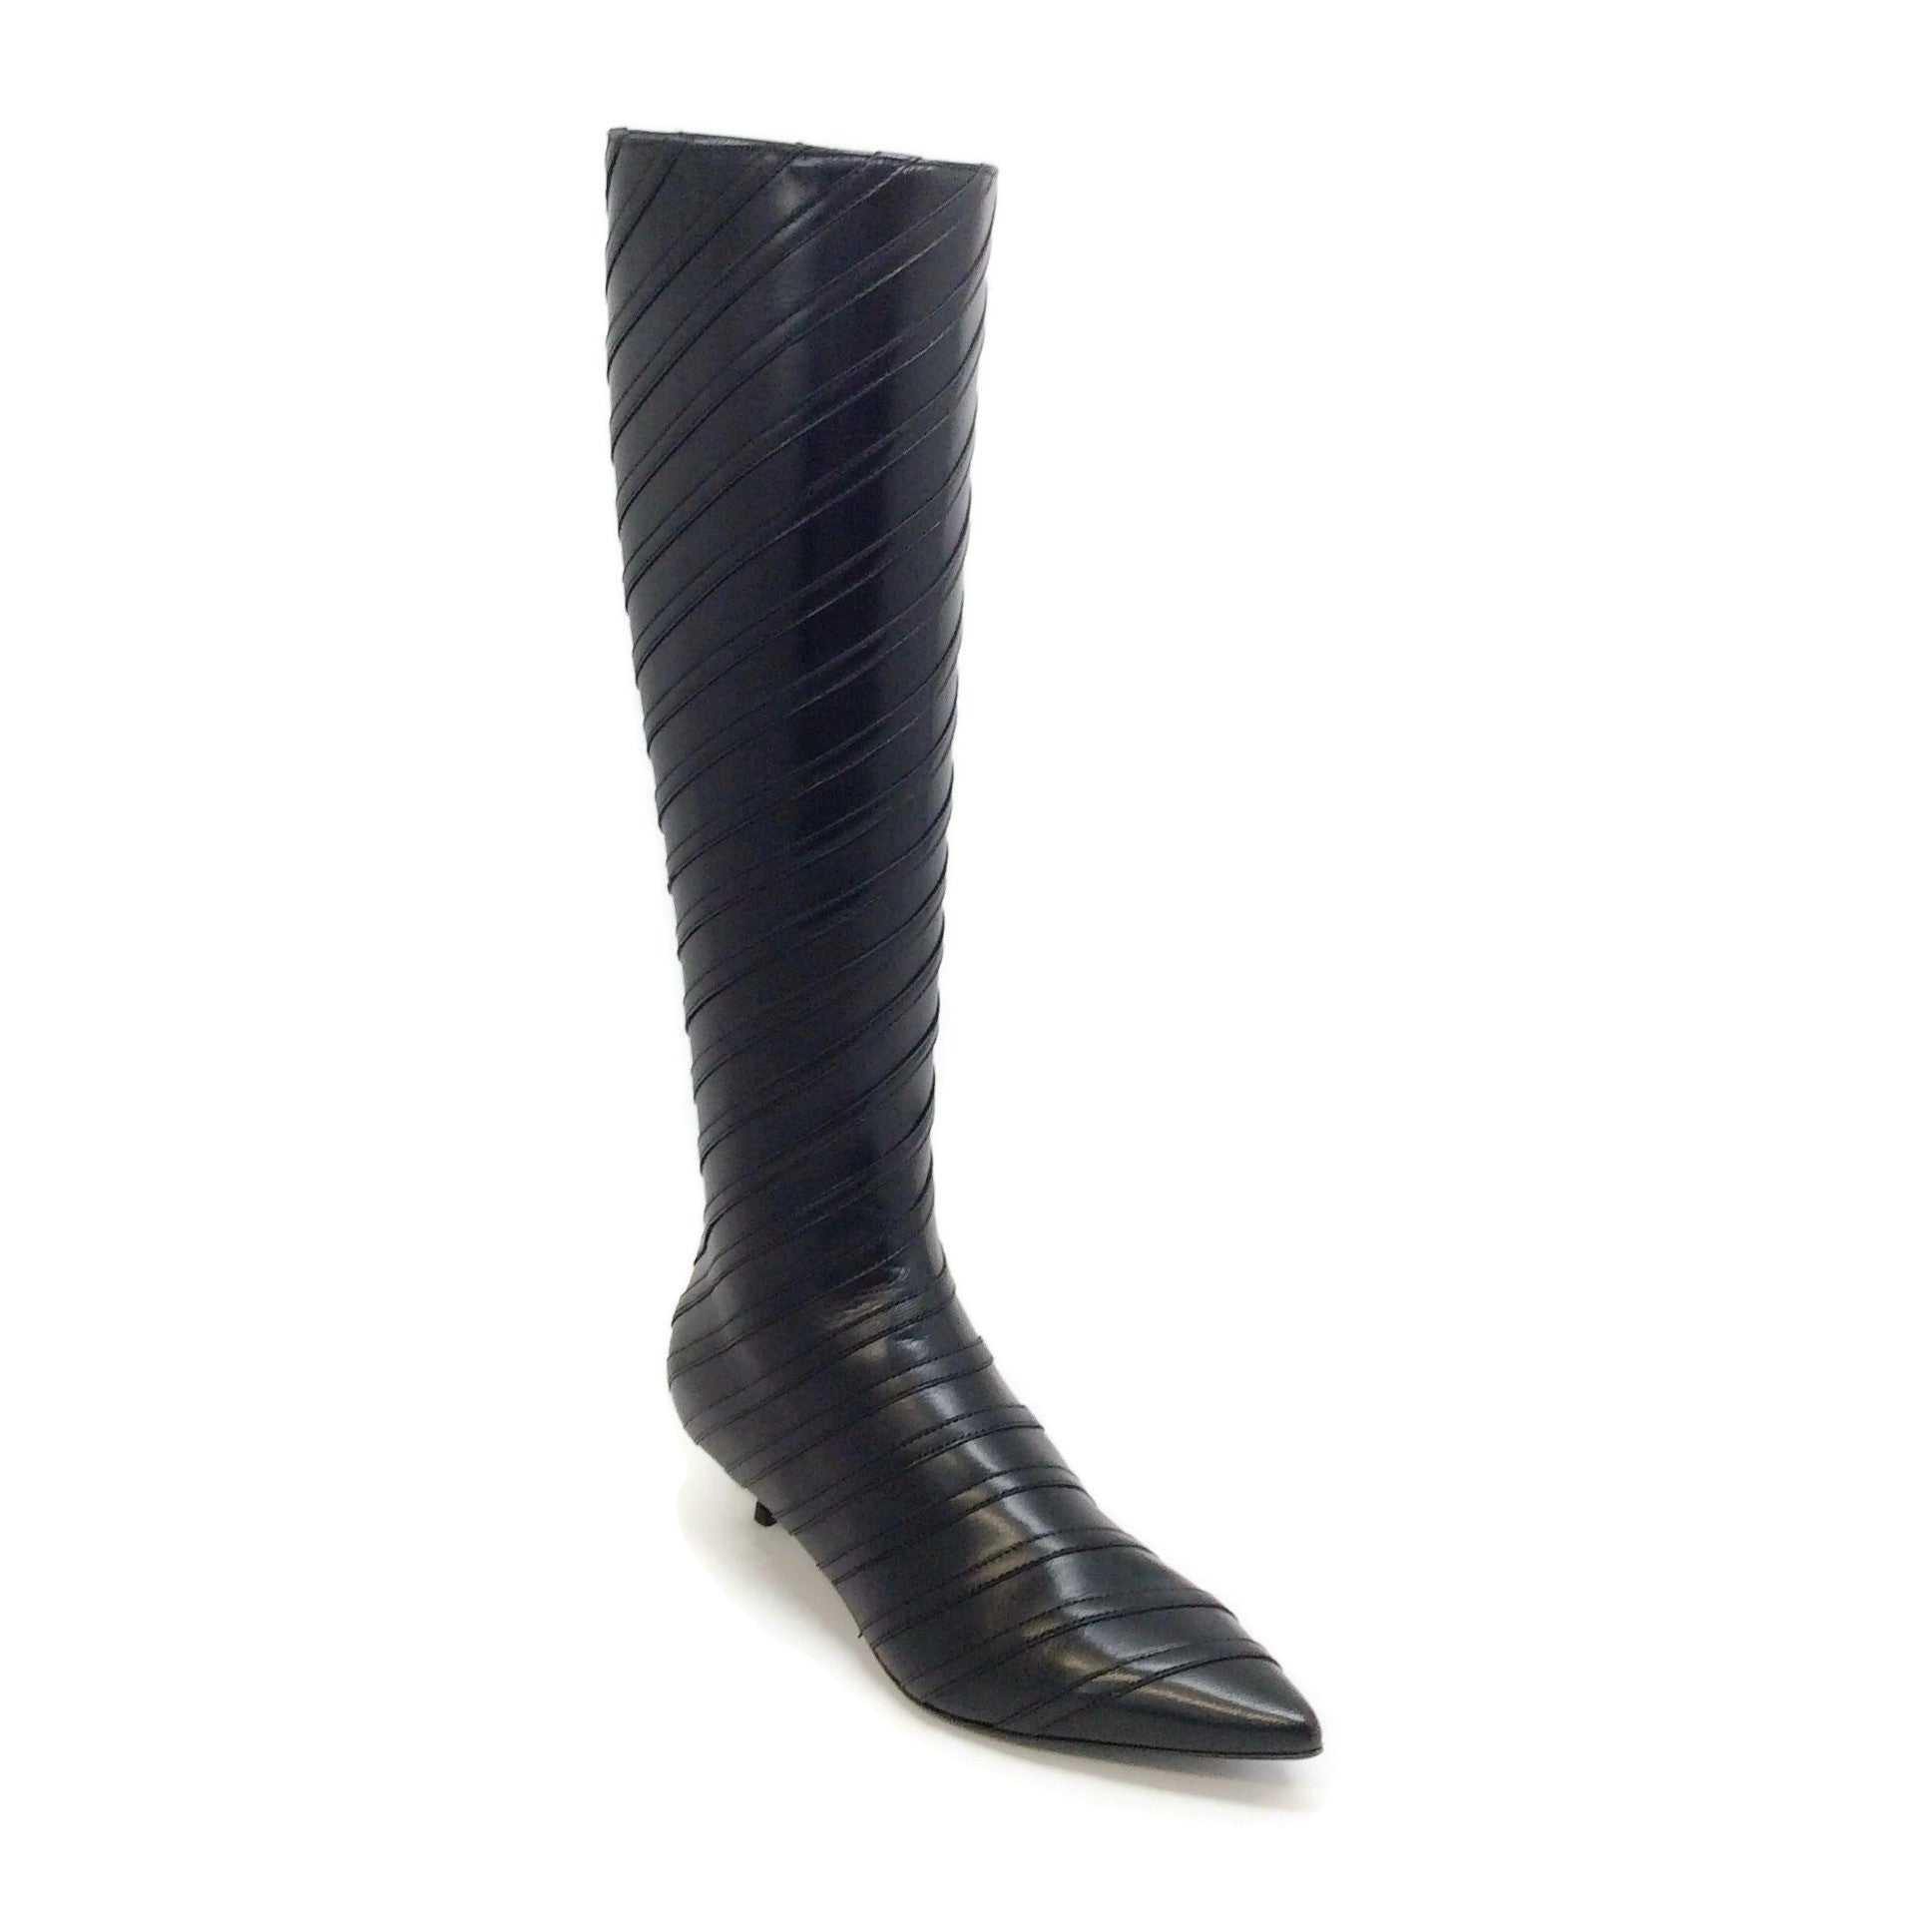 Sonia Rykiel Black / Black Calf Stripe Detail Kitten Heel Tall Boots